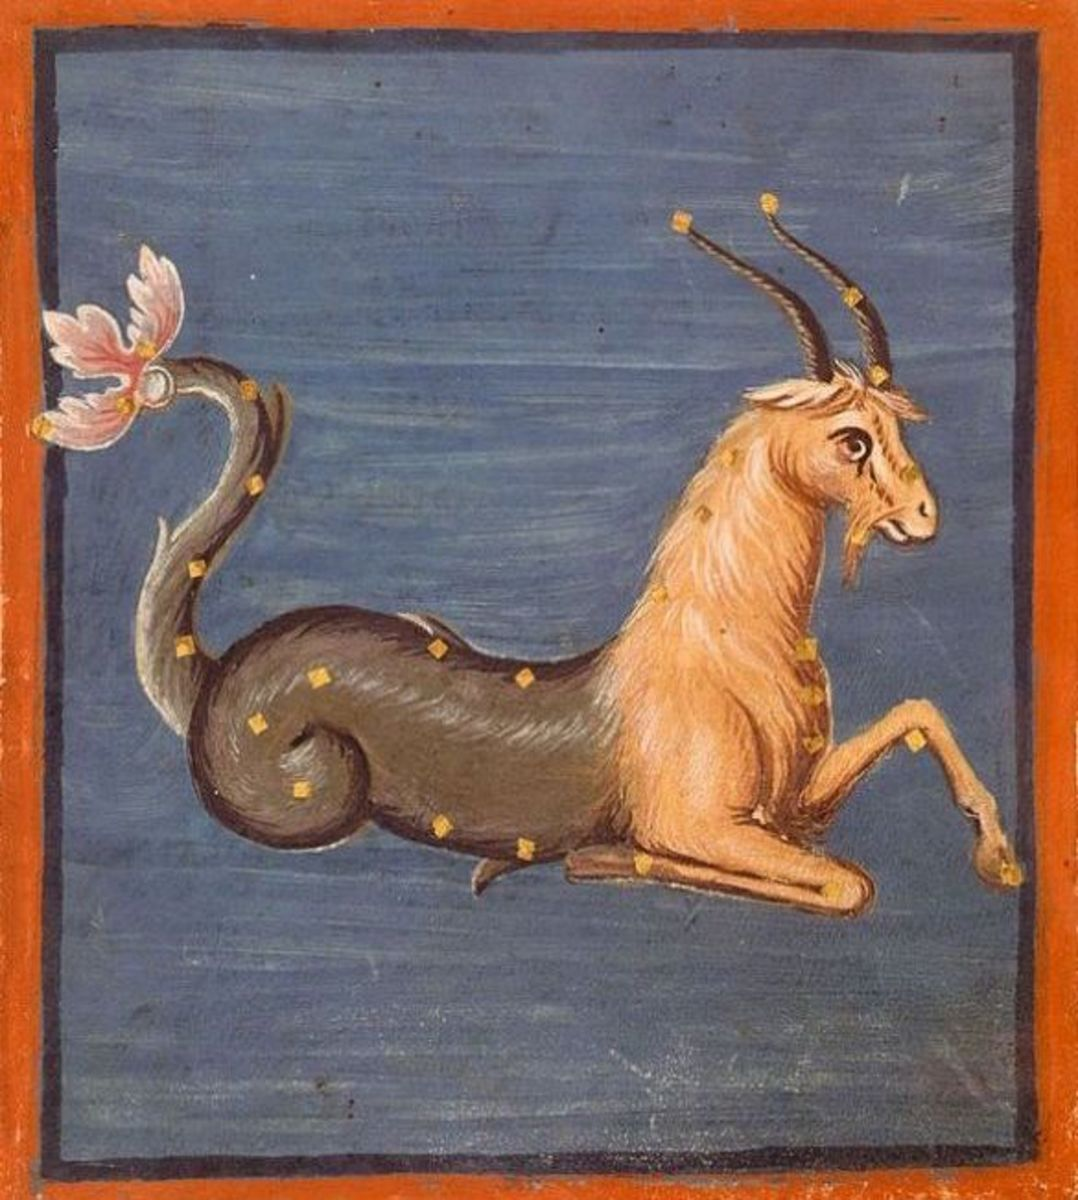 Capricorn the sea-goat was once the great Chaldean god of creation, Ea, able to live on both land and sea. The last of his kind, he was placed among the stars.